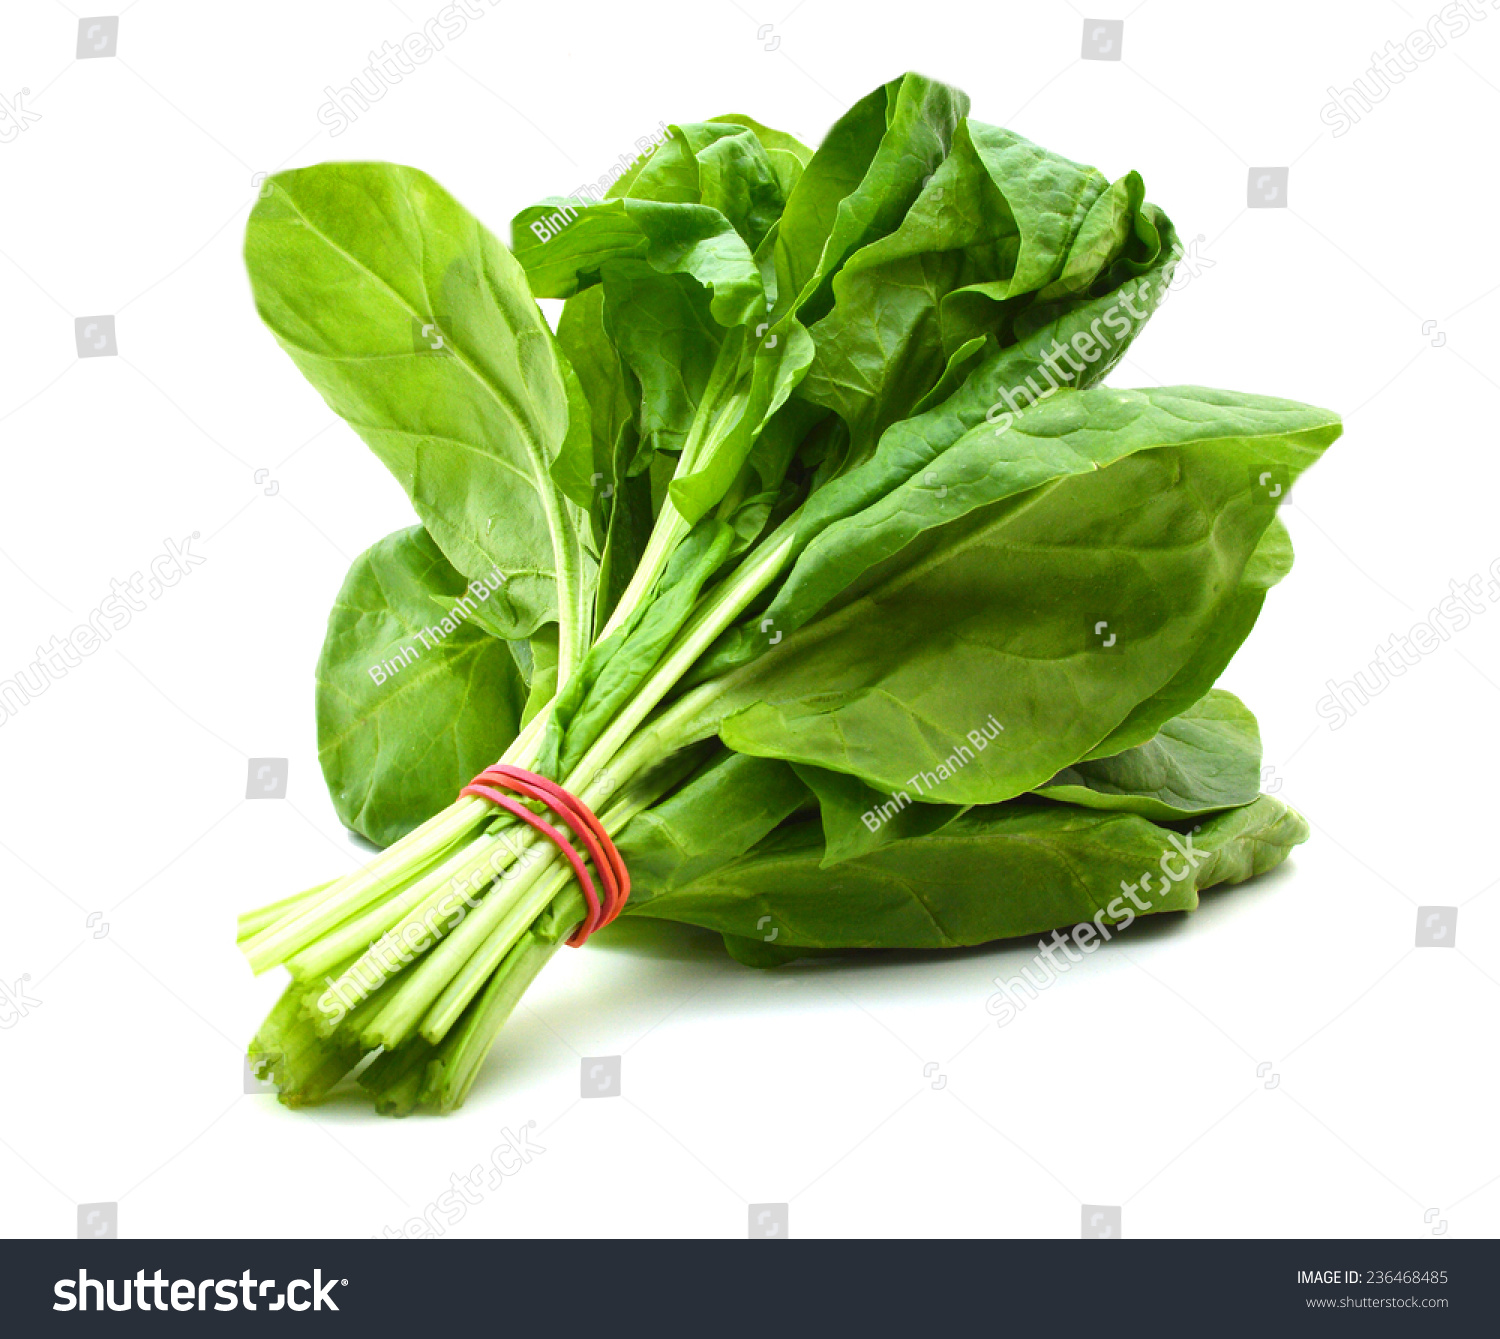 Bunch Of Spinach Leaves On Isolated White Background Stock ...